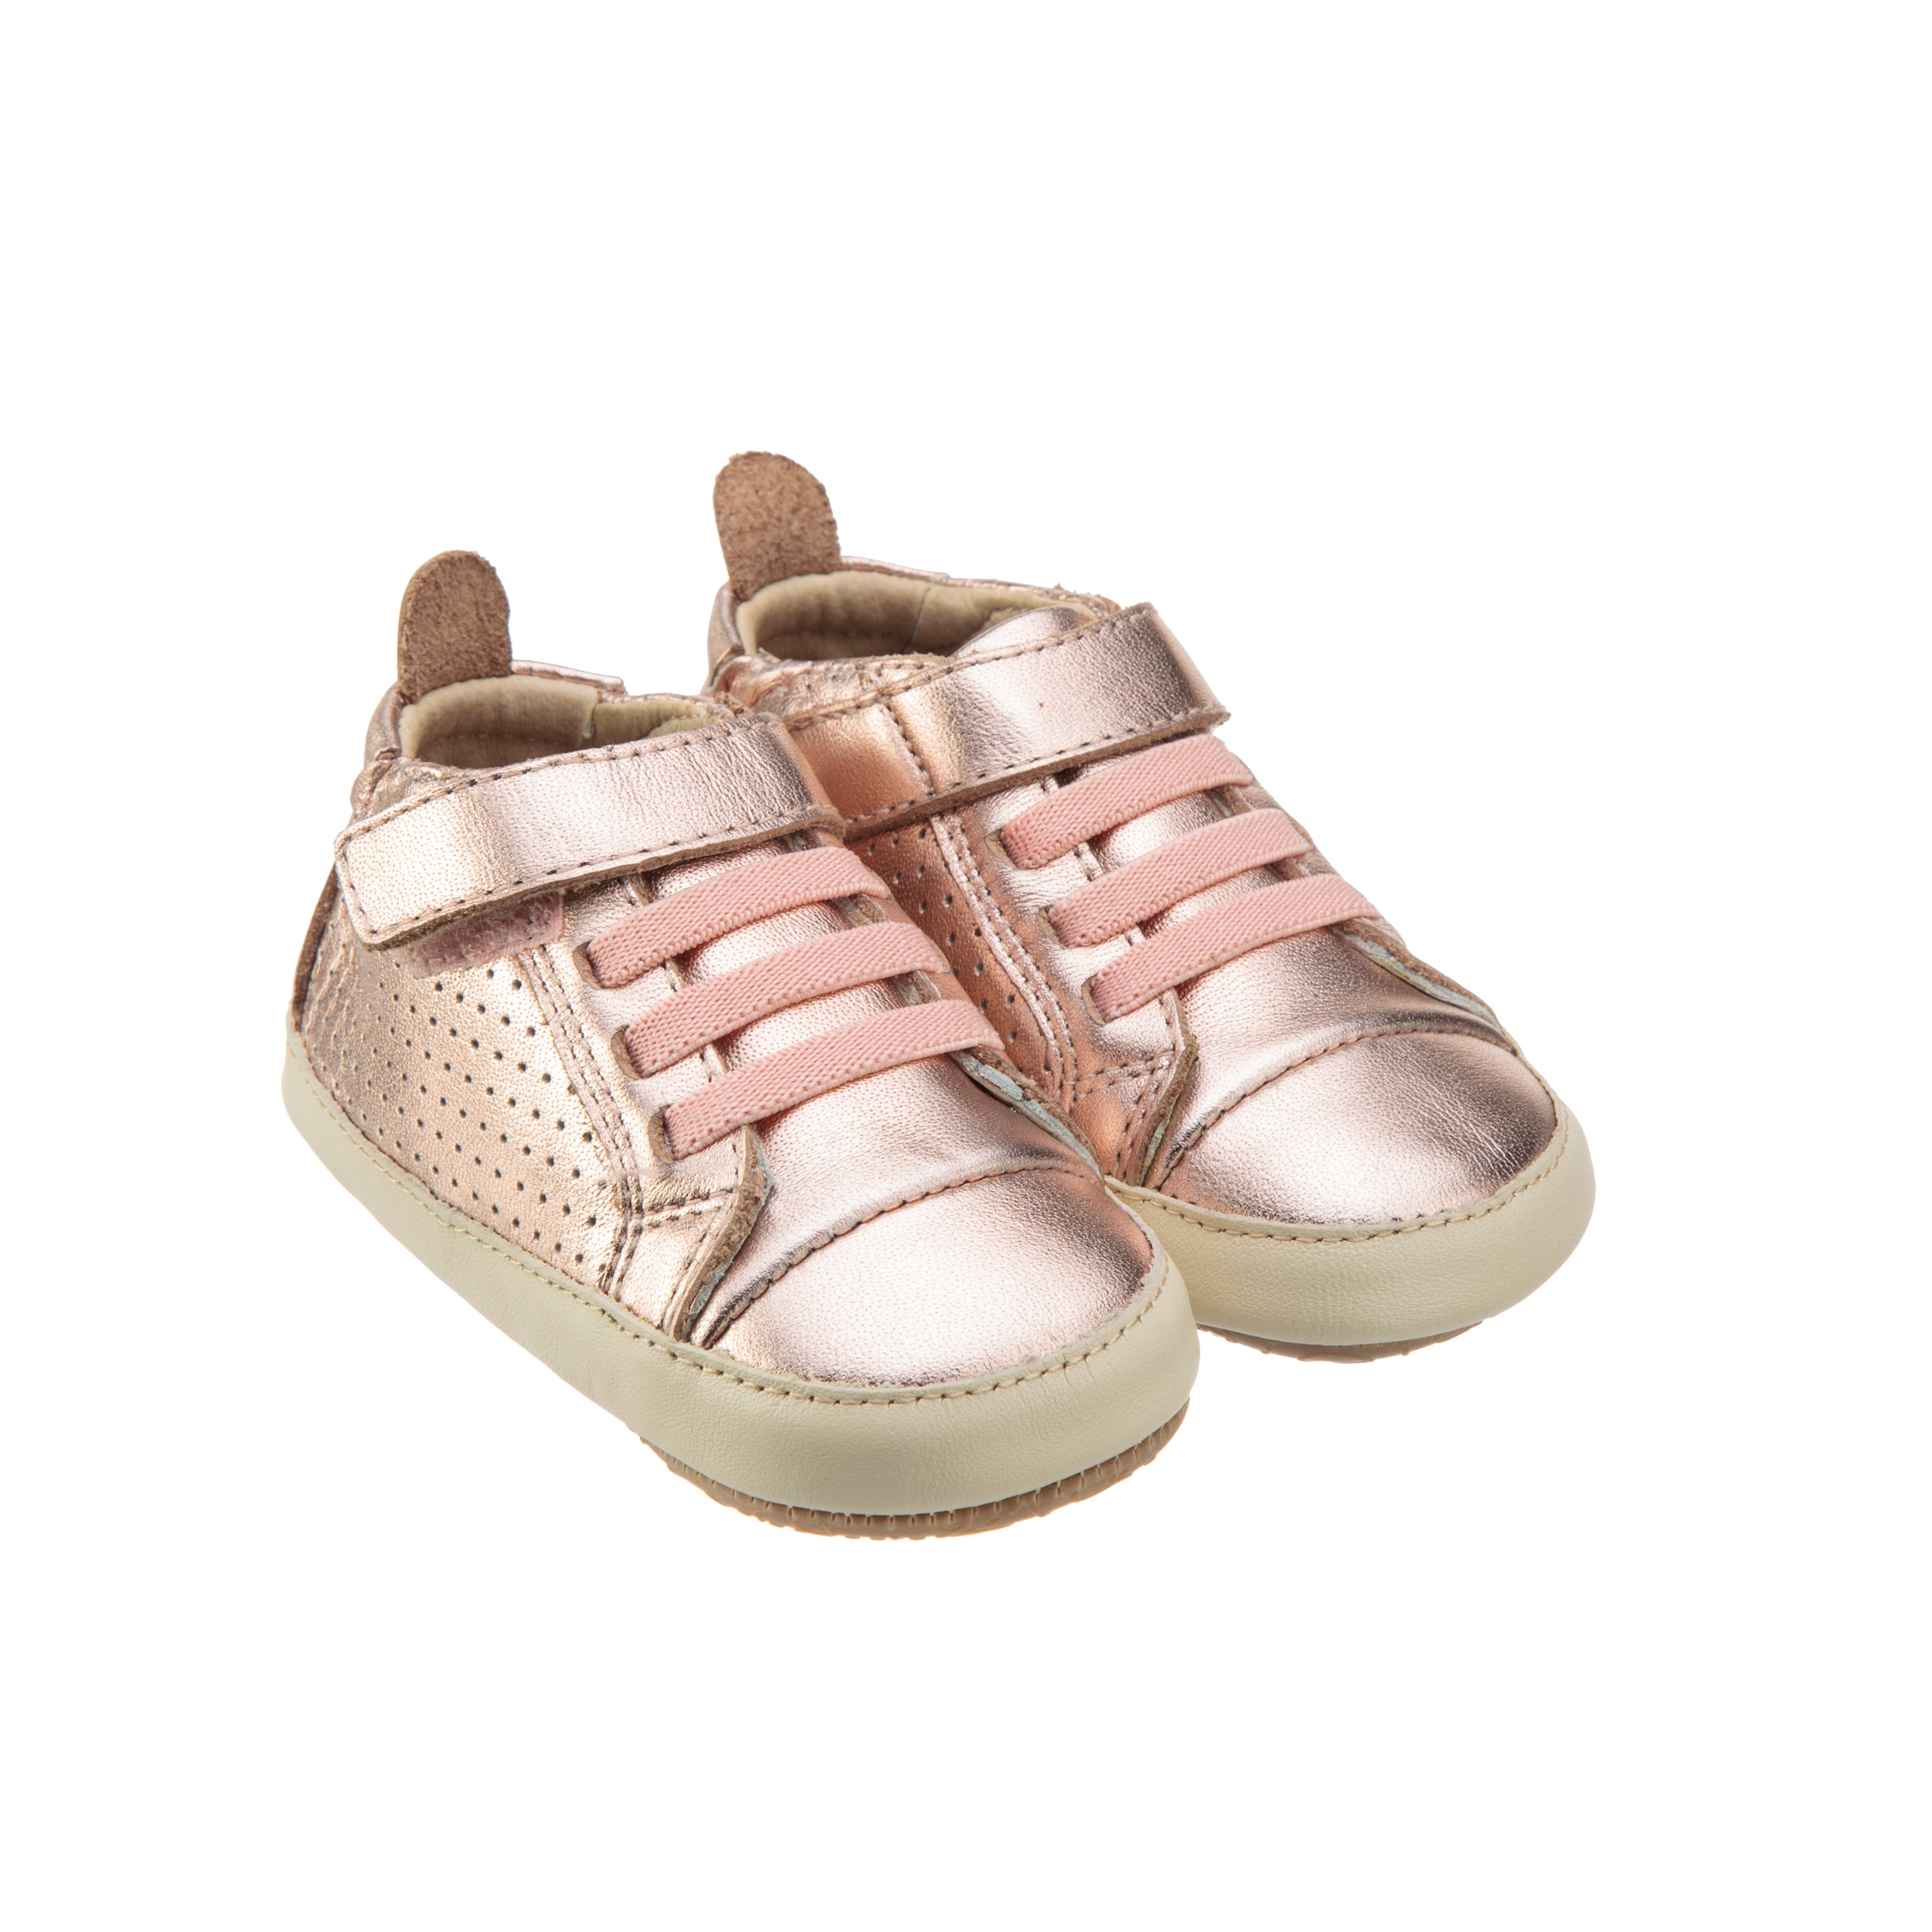 Cheer Bambini - Copper / Champagne